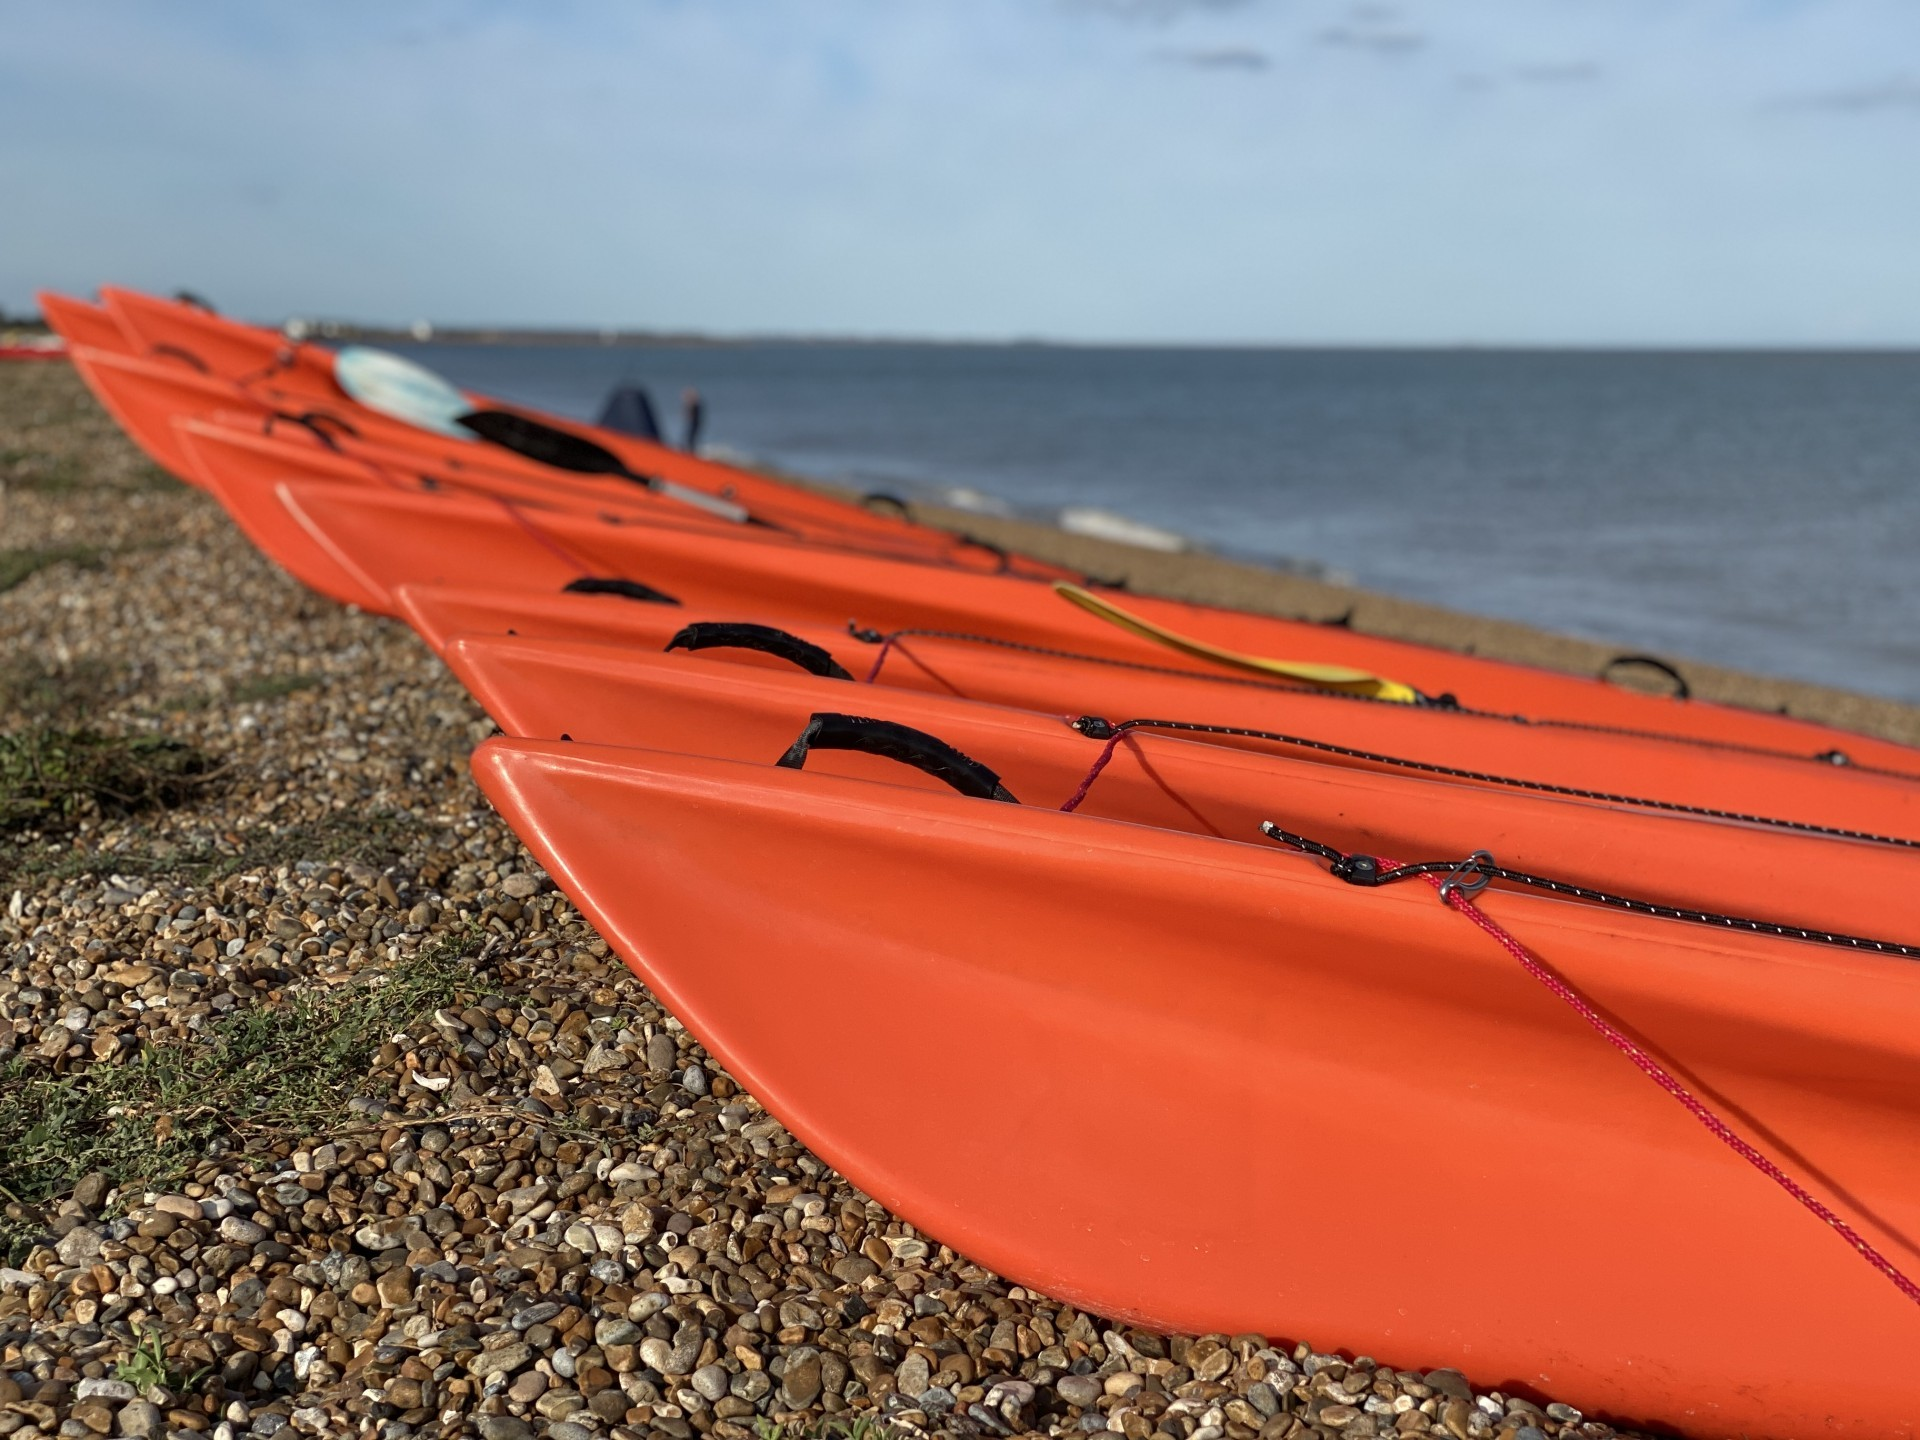 A long line of orange kayak bows on a shingle beach in the sunshine